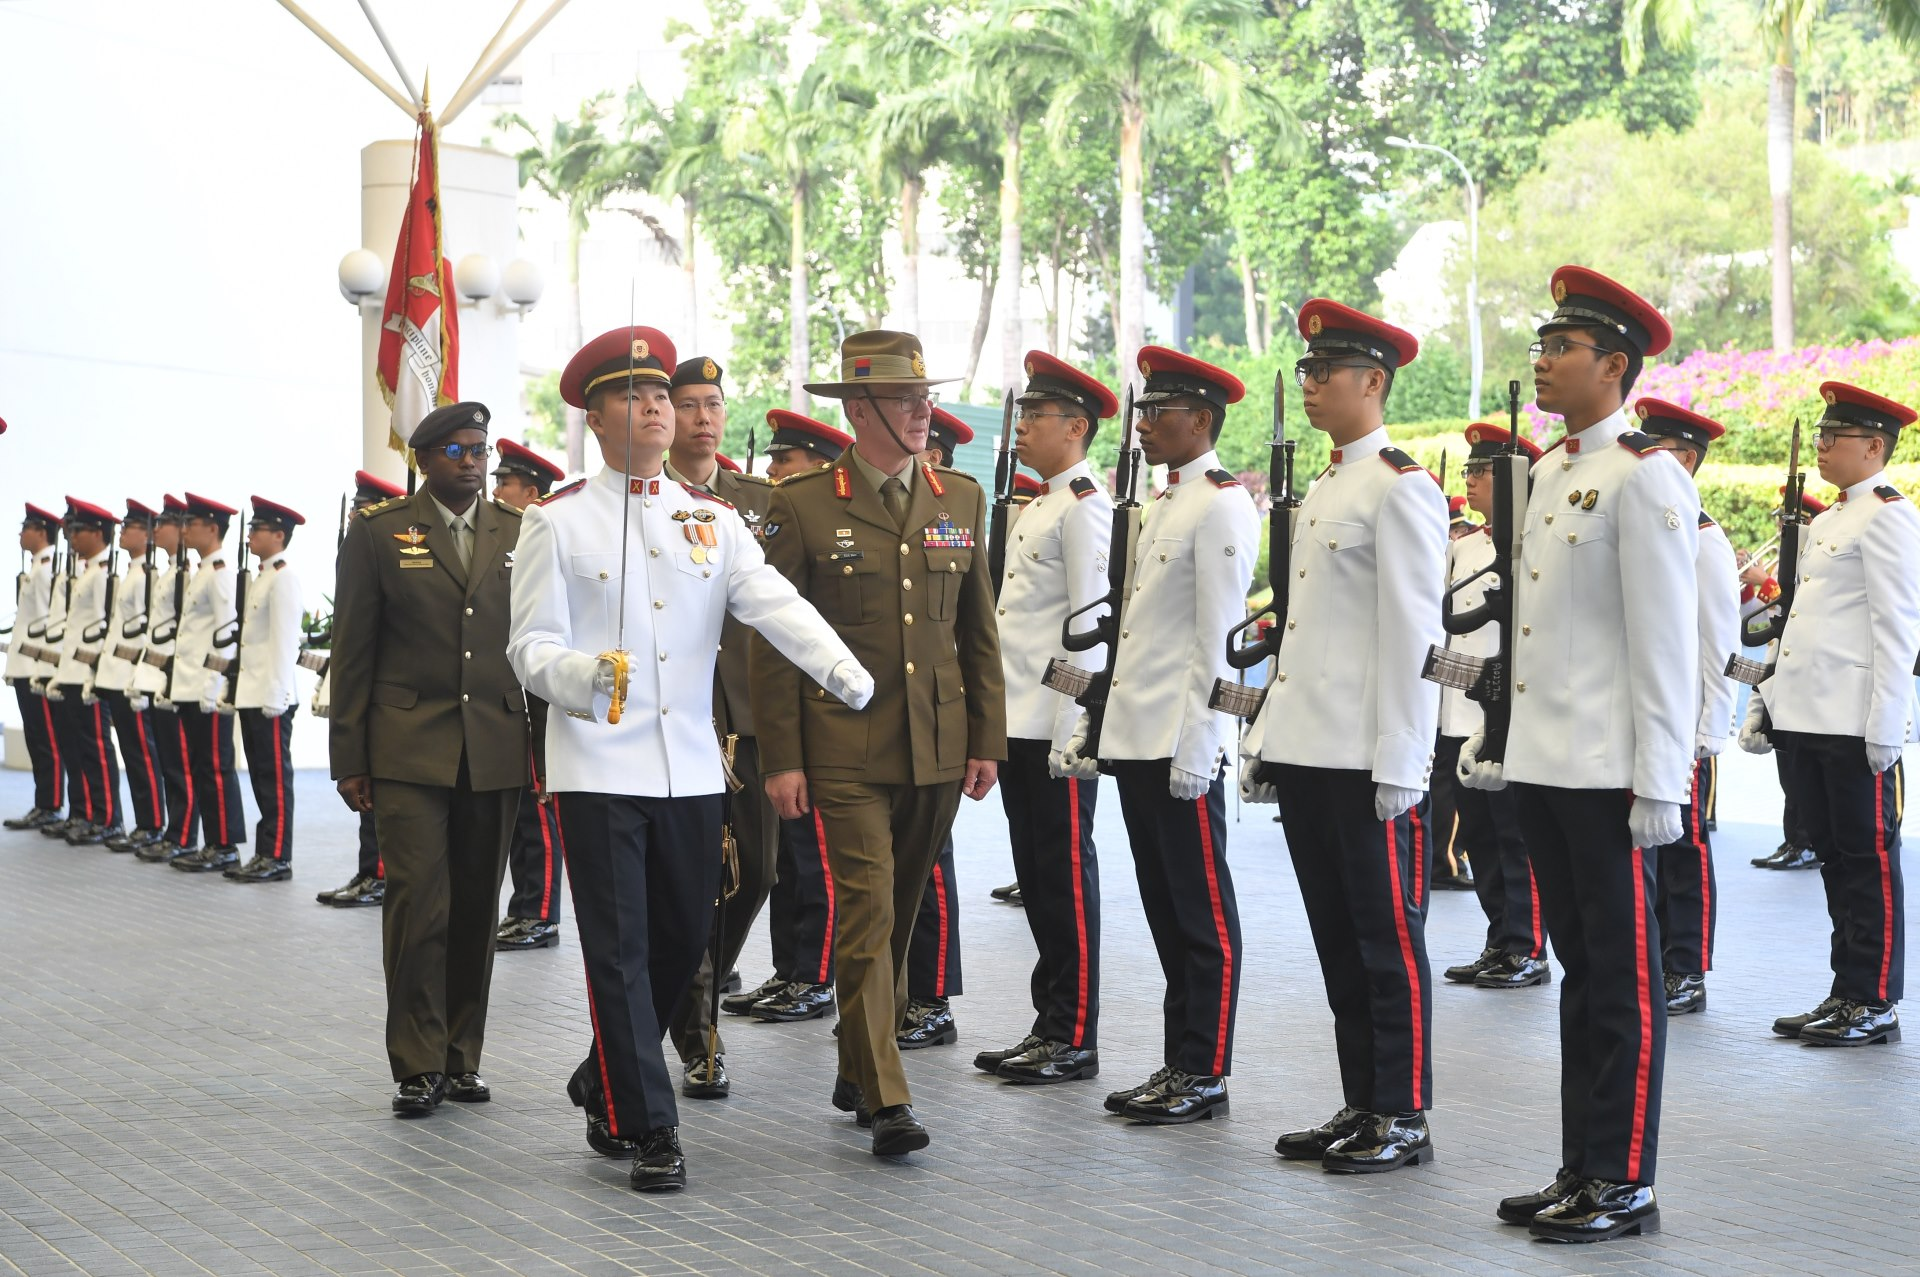 LTGEN Burr reviewing a Guard of Honour at MINDEF earlier today.